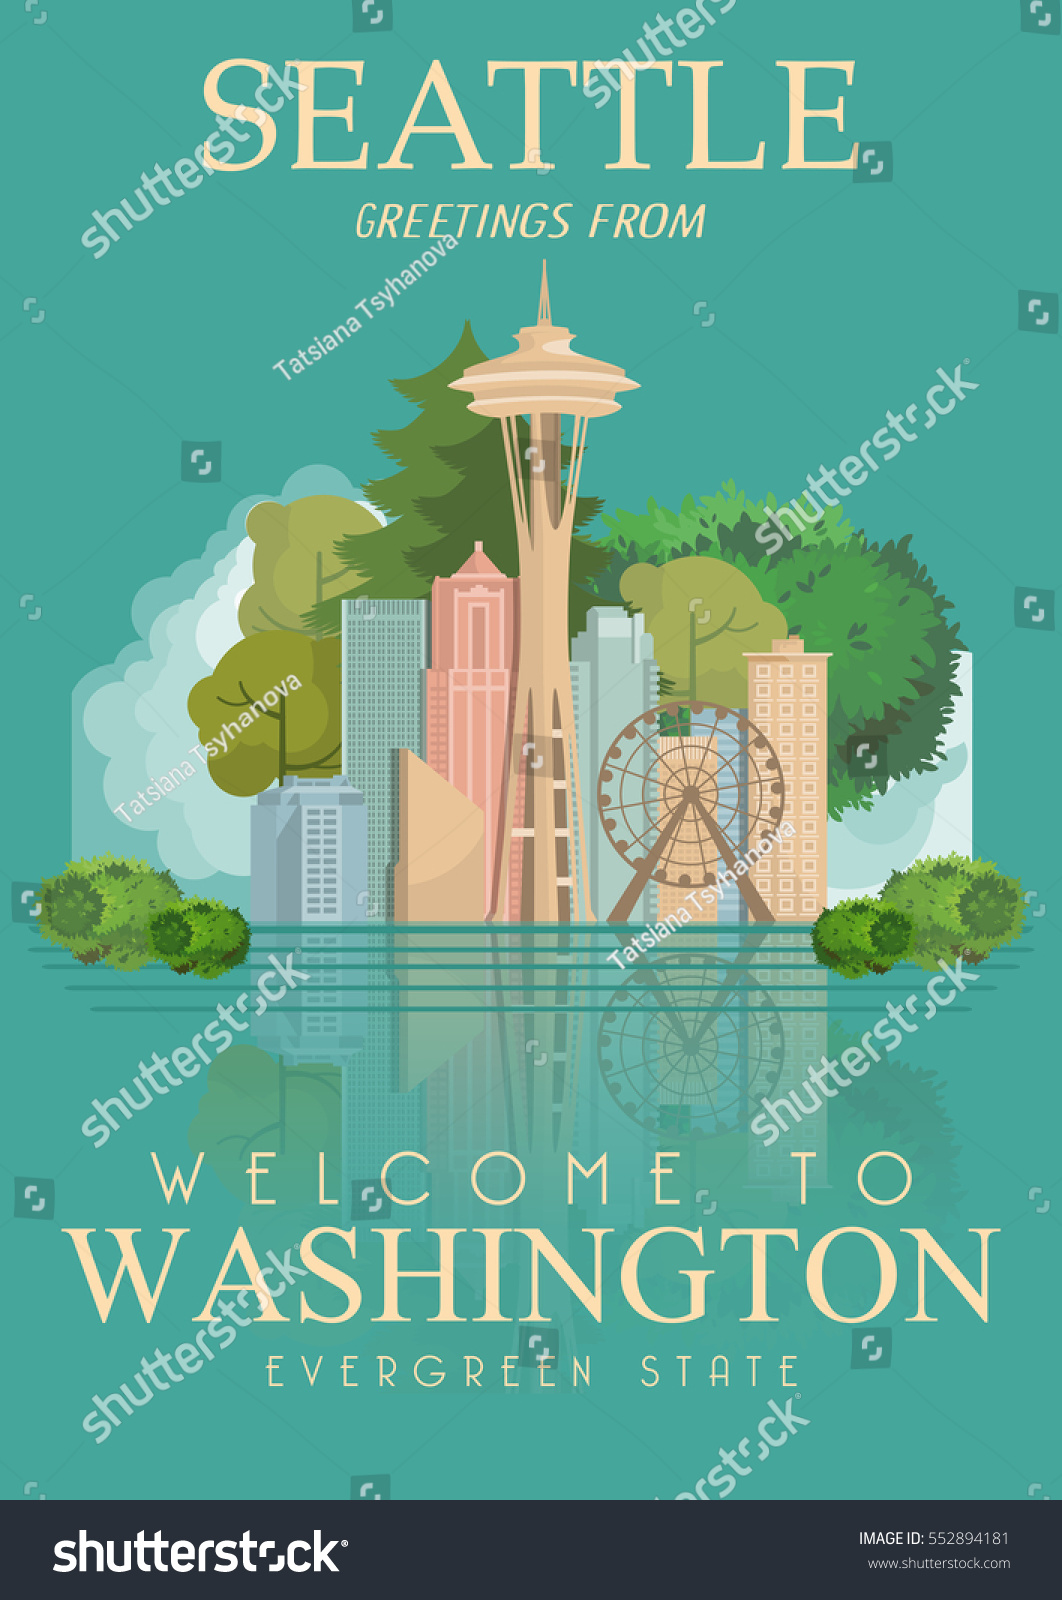 Washington vector american poster usa travel stock vector 552894181 washington vector american poster usa travel illustration united states of america colorful greeting card kristyandbryce Images